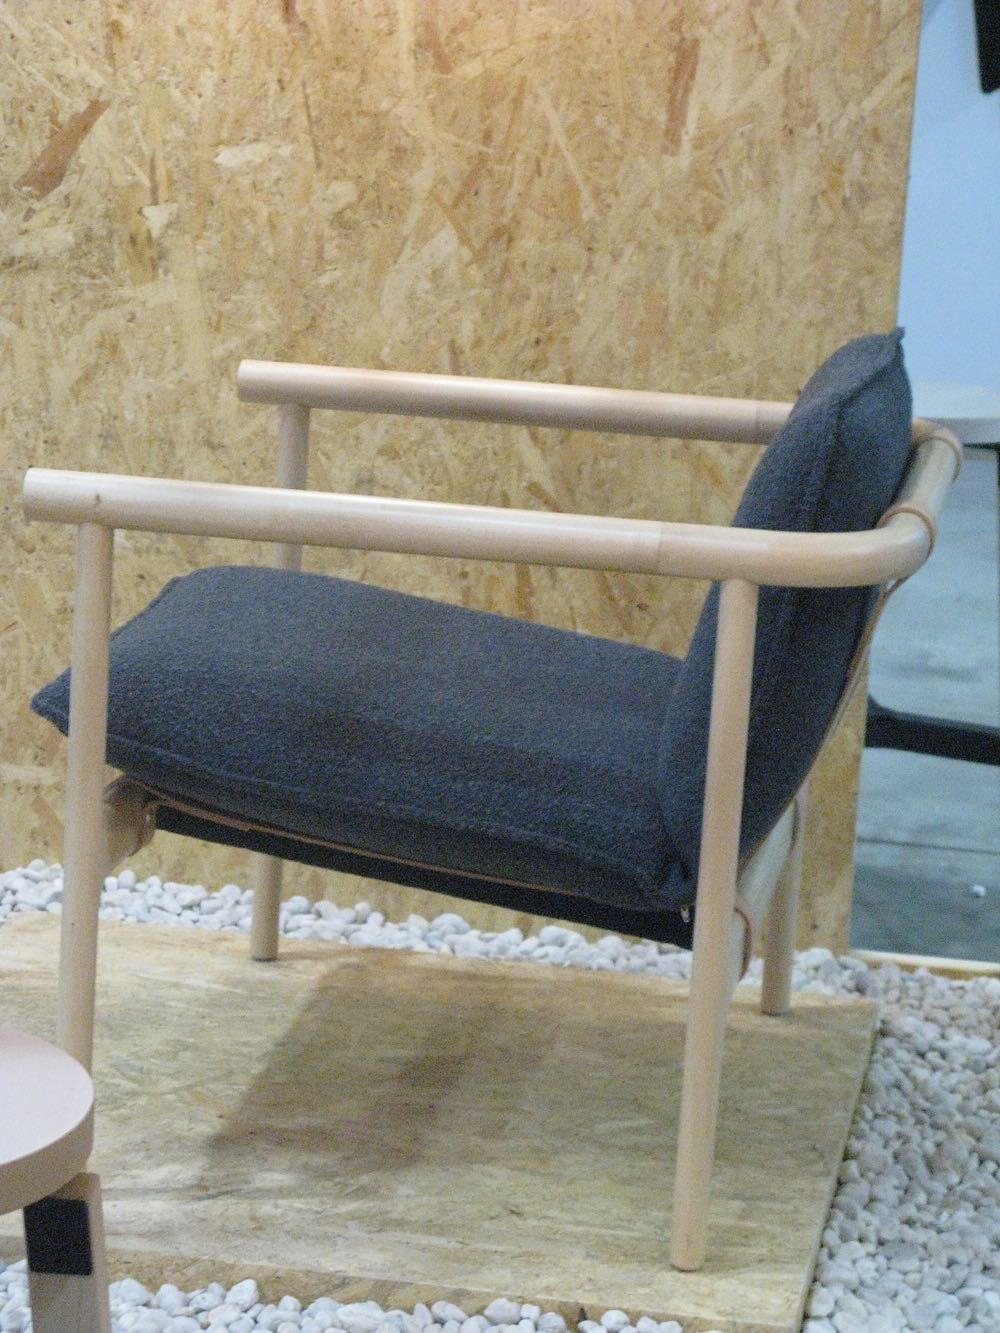 Tom Skeehan's new armchair from the 'Hoshi' collection bridges Japanese and Danish aesthetics.